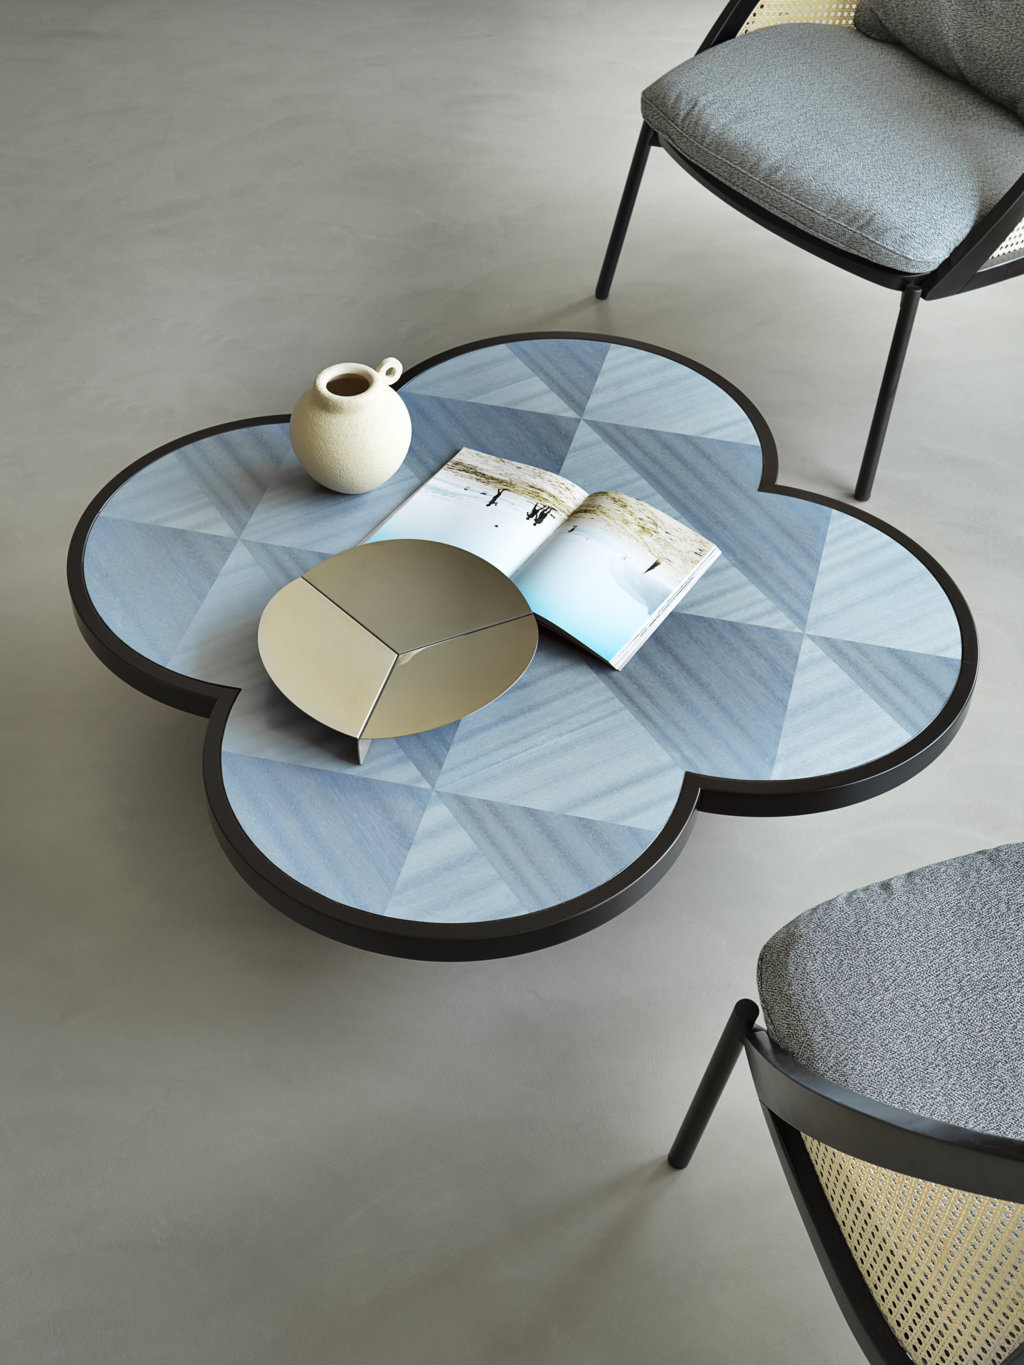 Caryllon Low Table - This coffee table boasts a wooden structure with a modern square section, a striking contrast with the round and sinuous lines of the base and top. The standout feature of this stunning piece is its top, adorned with a sophisticated, handcrafted inlay method that uses strips of straw to create a motif inspired by the Viennese straw. The rich blue color is inspired by the opulent Art Deco style.